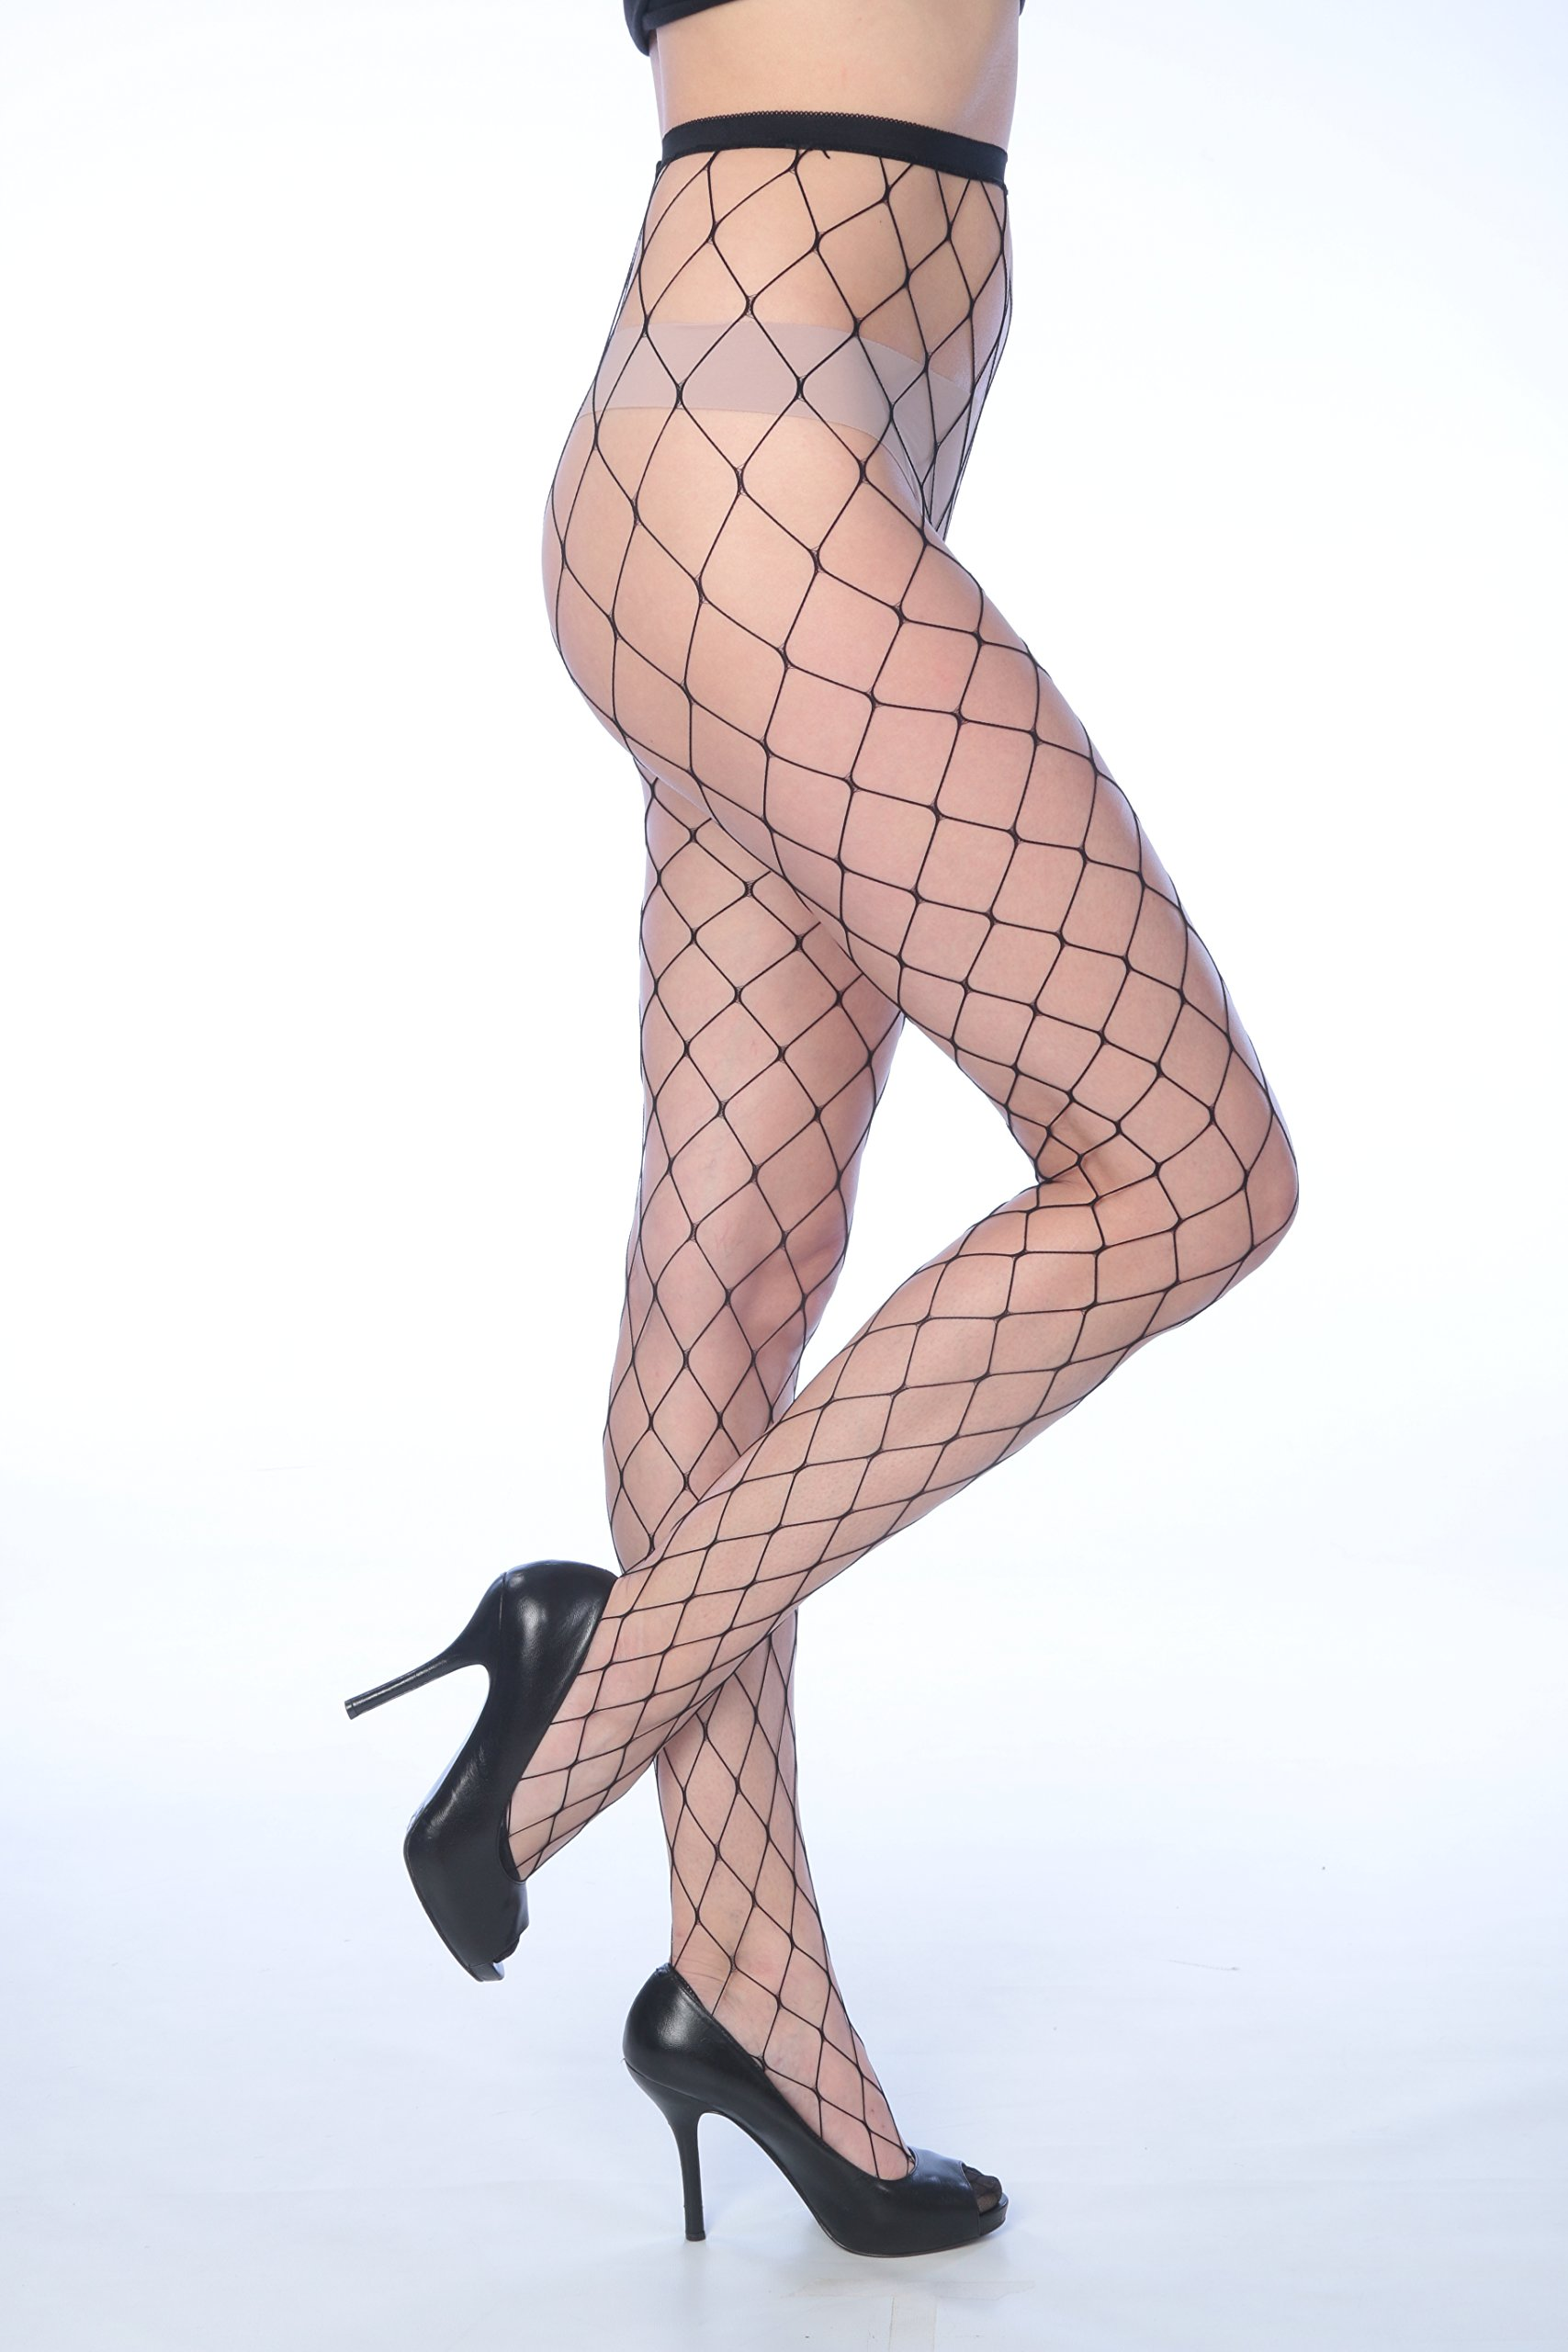 Isadora Paccini Women's 6-Pack Fishnet Lace Pantyhose Tights (One Size Fits Most, black 807)